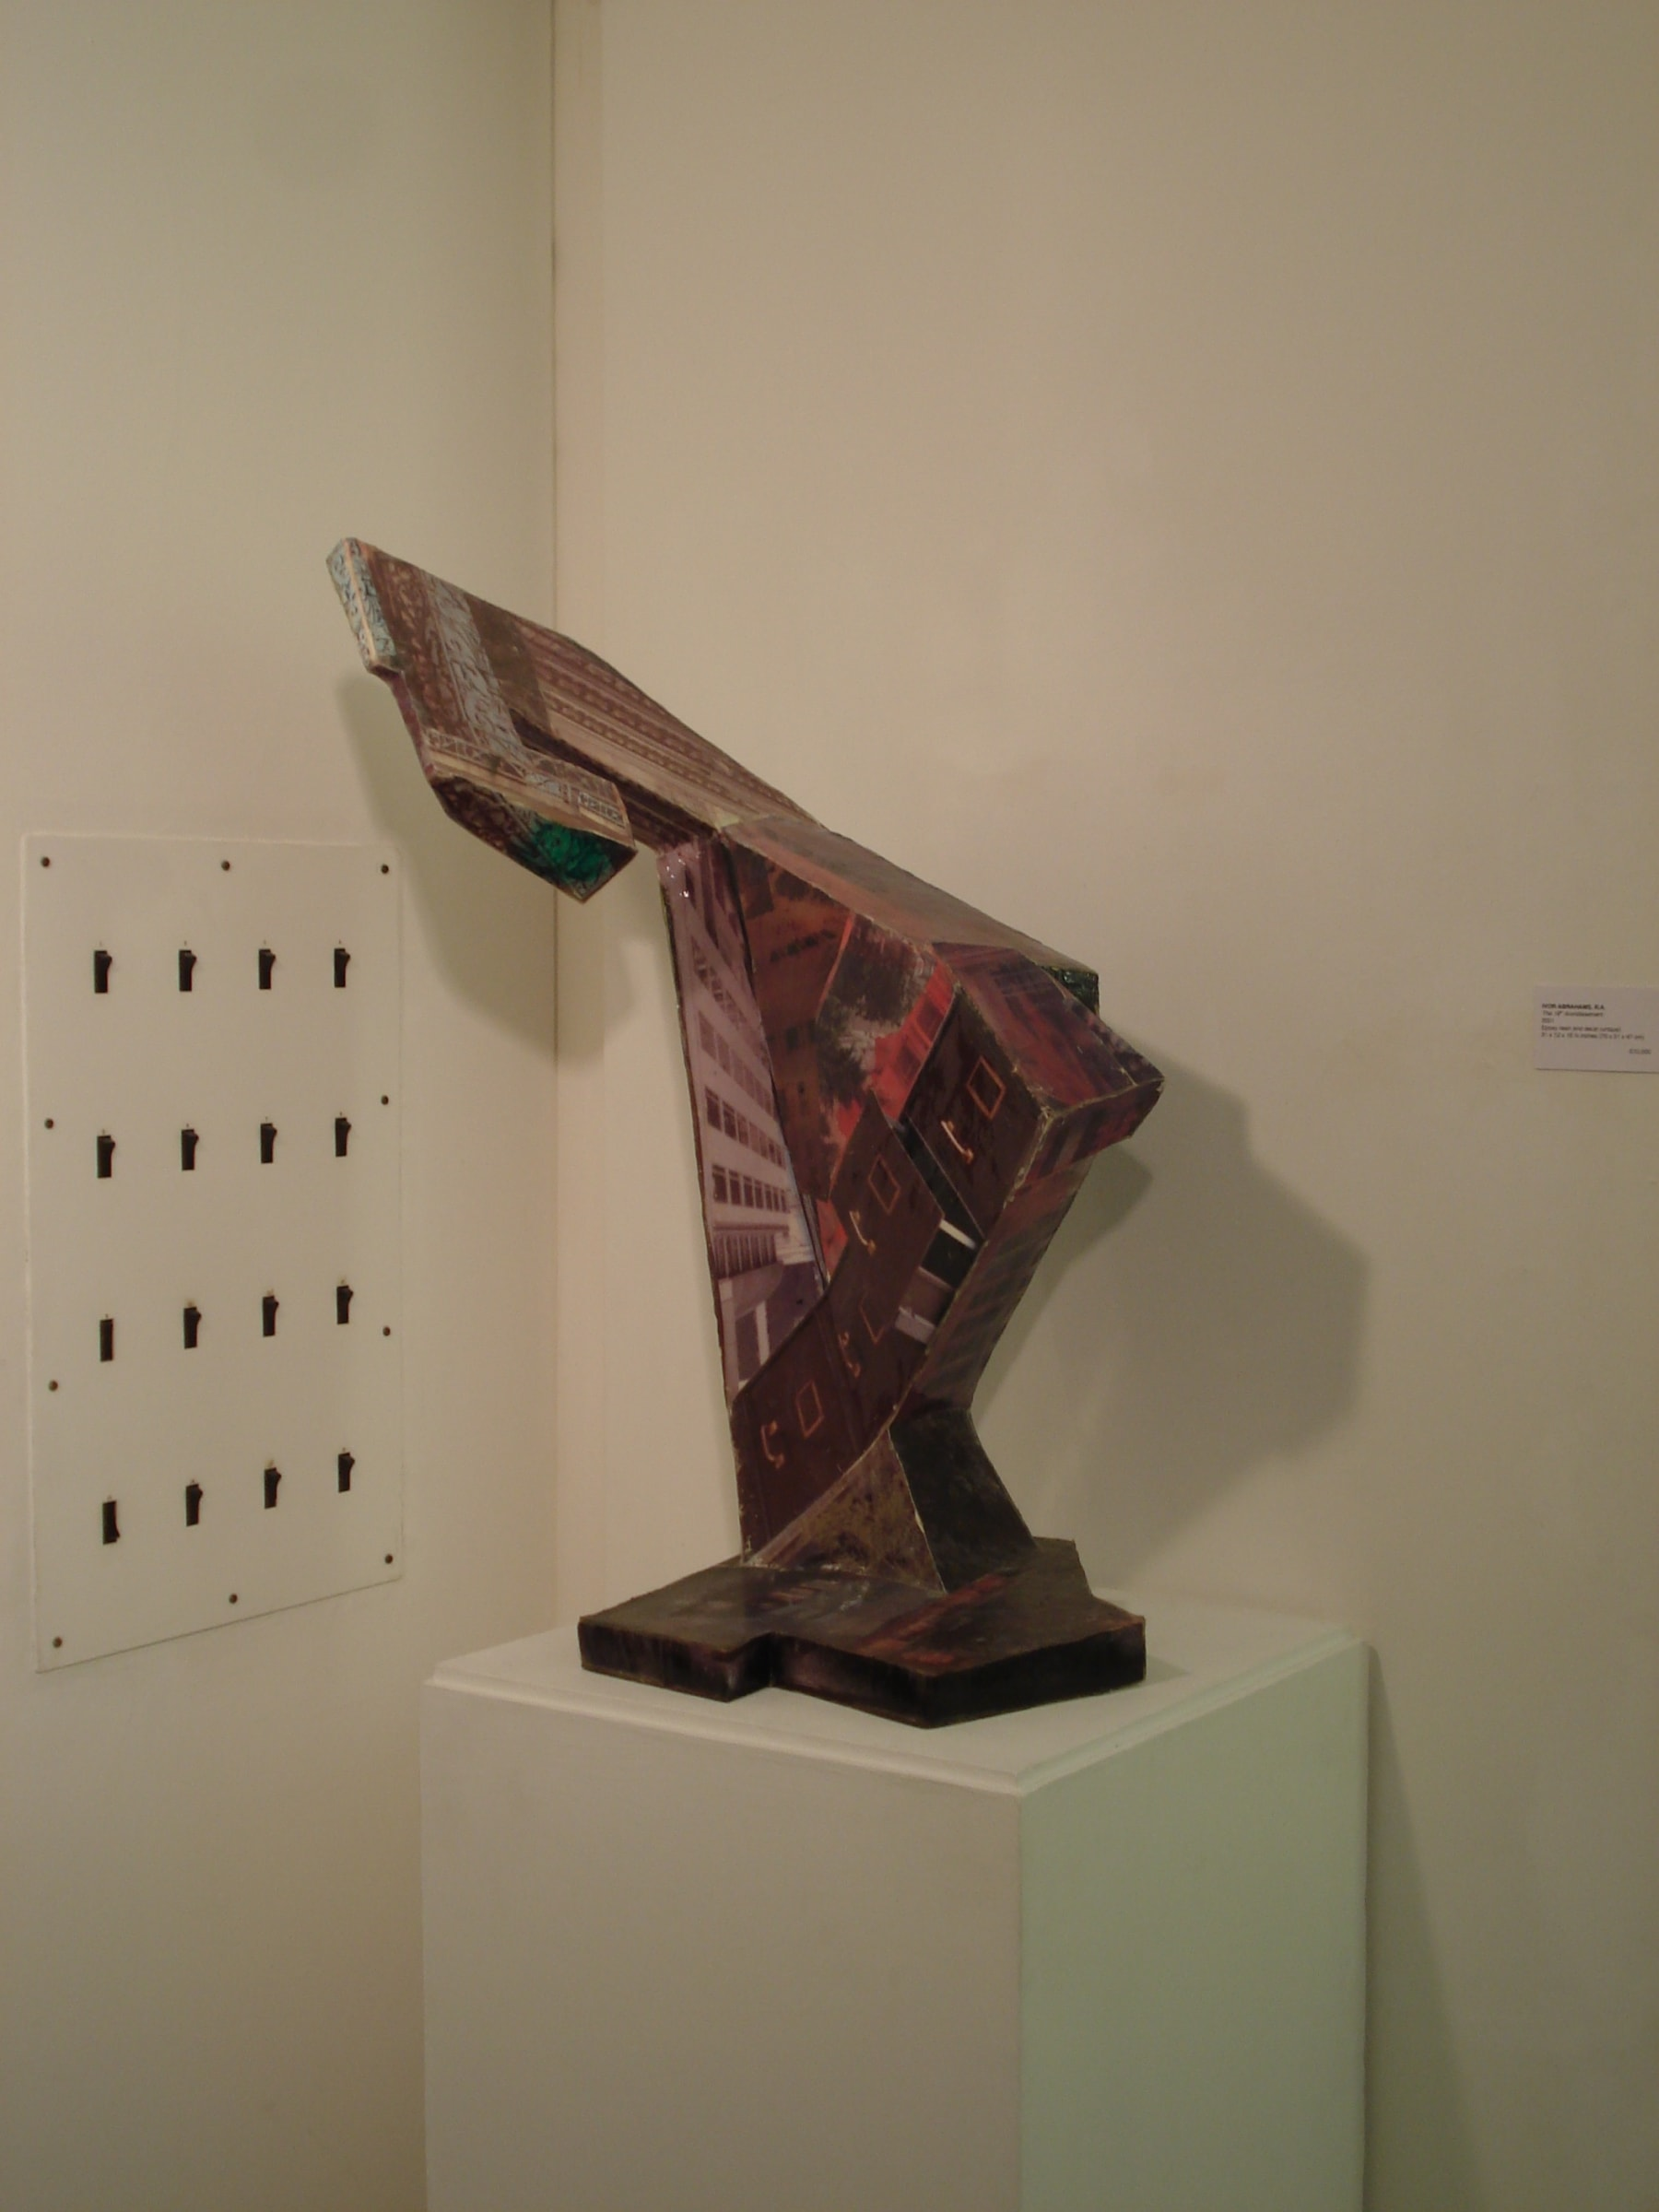 """<span class=""""link fancybox-details-link""""><a href=""""/exhibitions/103/works/image_standalone409/"""">View Detail Page</a></span><p>IVOR ABRAHAMS RA   PAINTED SCULPTURE   04 FEB - 21 FEB 2008   Installation View</p>"""